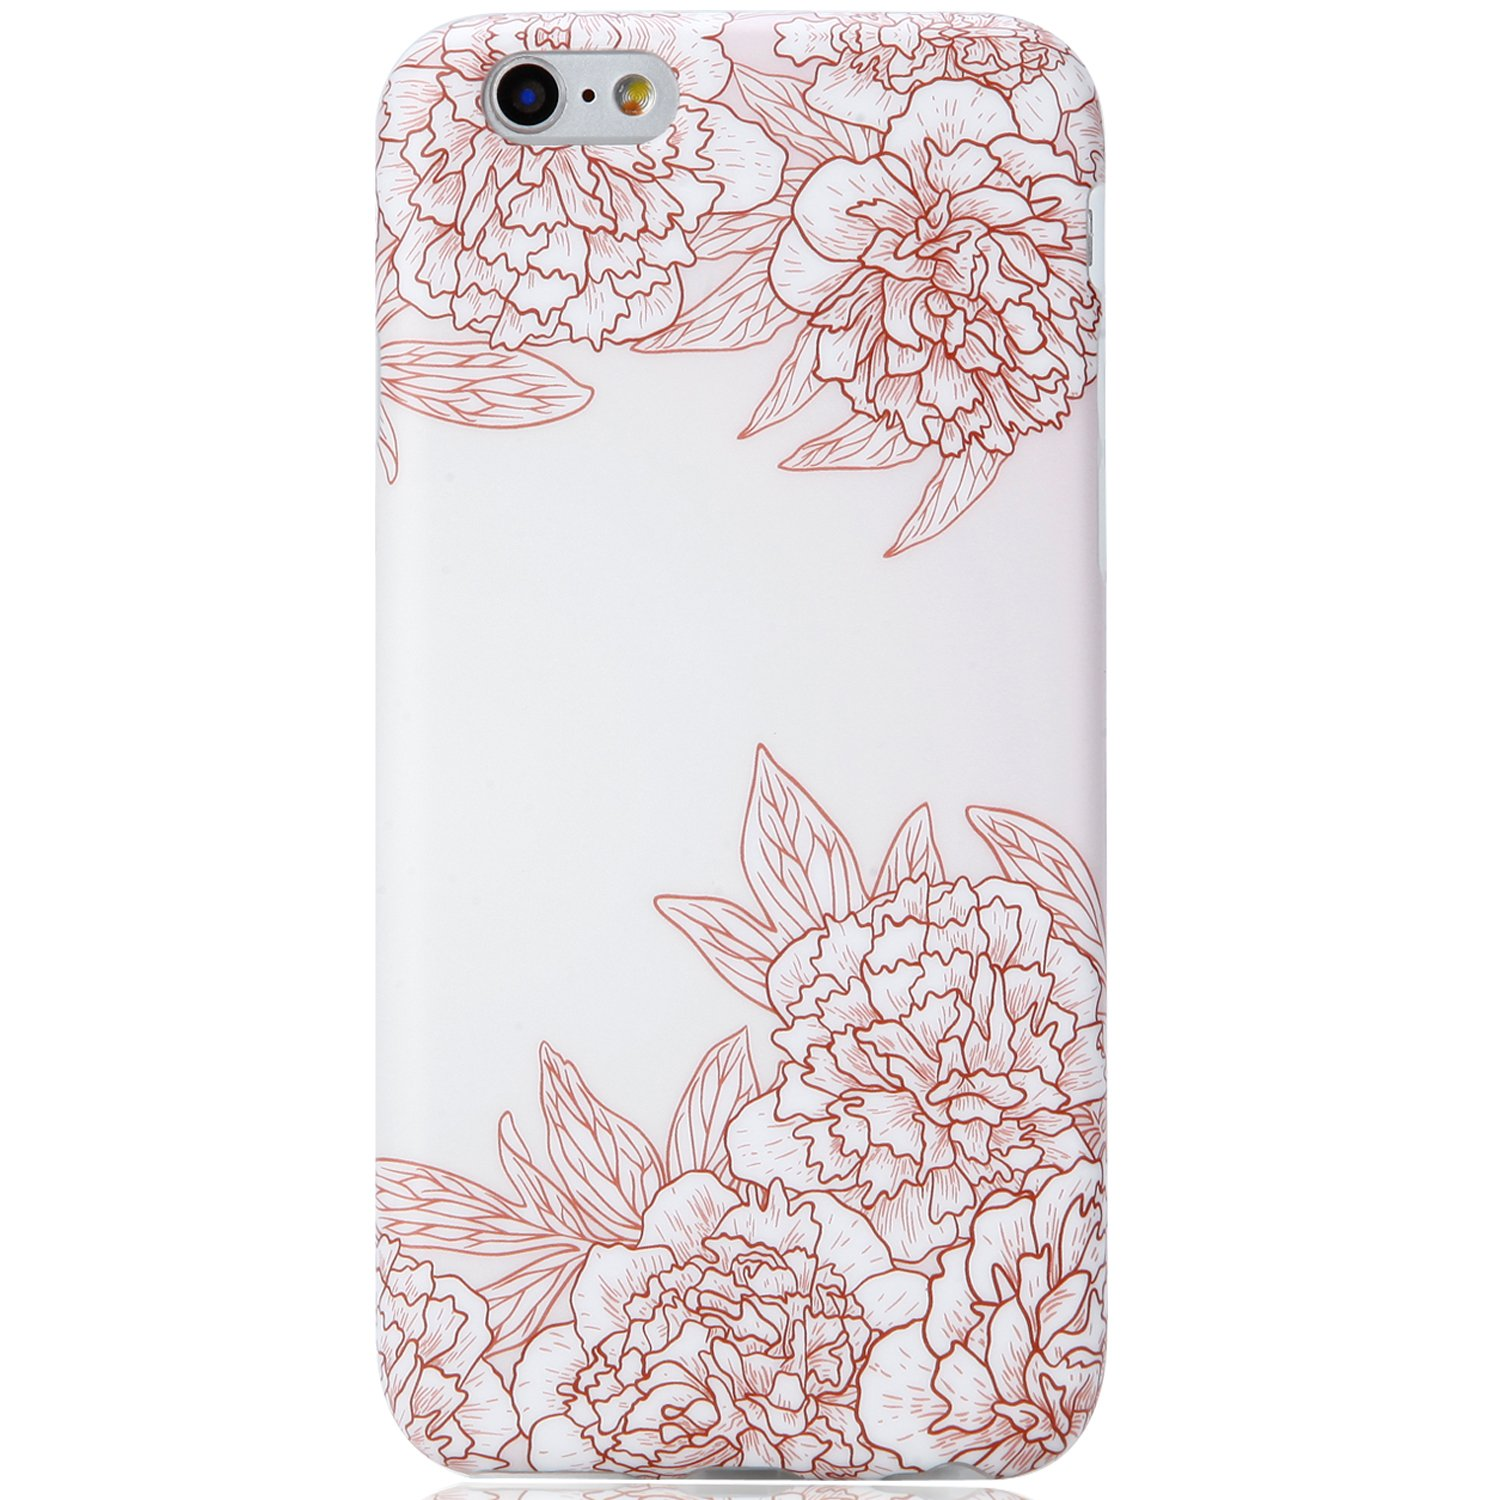 Amazon.com: VIVIBIN Funda para iPhone 6, funda para iPhone ...